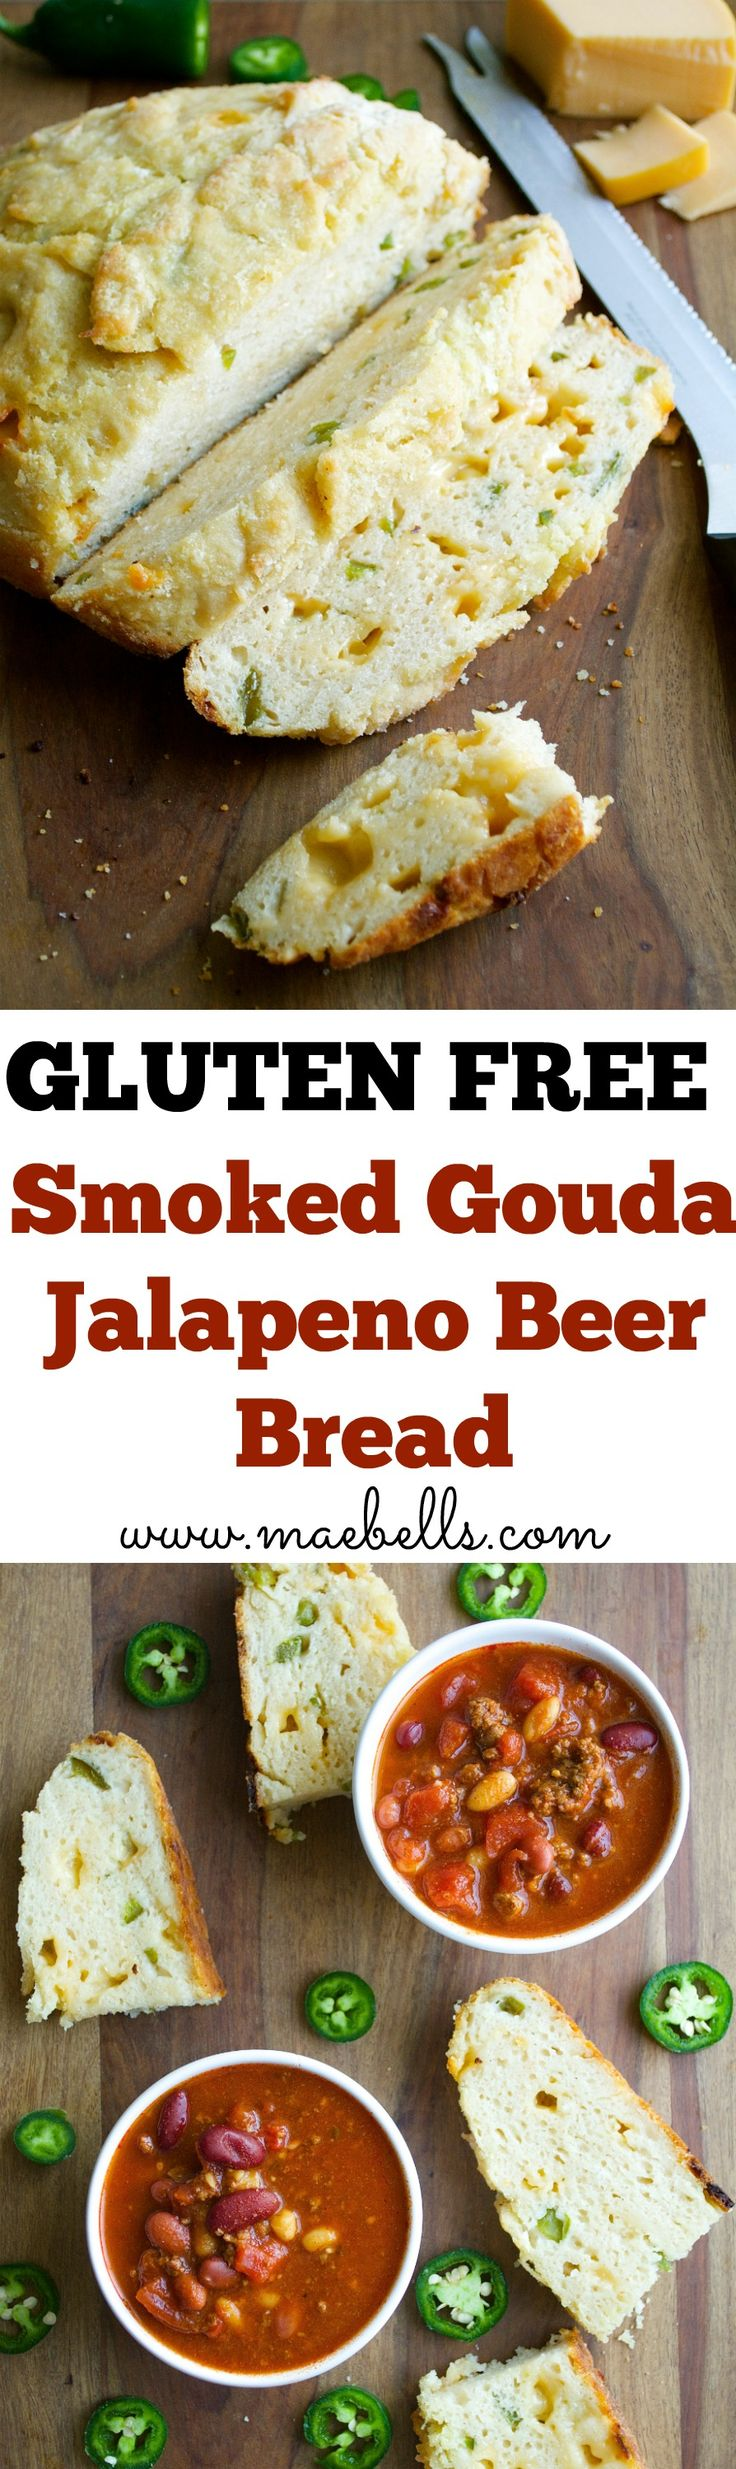 This Smoked Gouda and Jalapeño Beer bread is the best gluten free bread yet! Full of spicy jalapeño and smokey gouda, you will wonder how you ever lived without it!